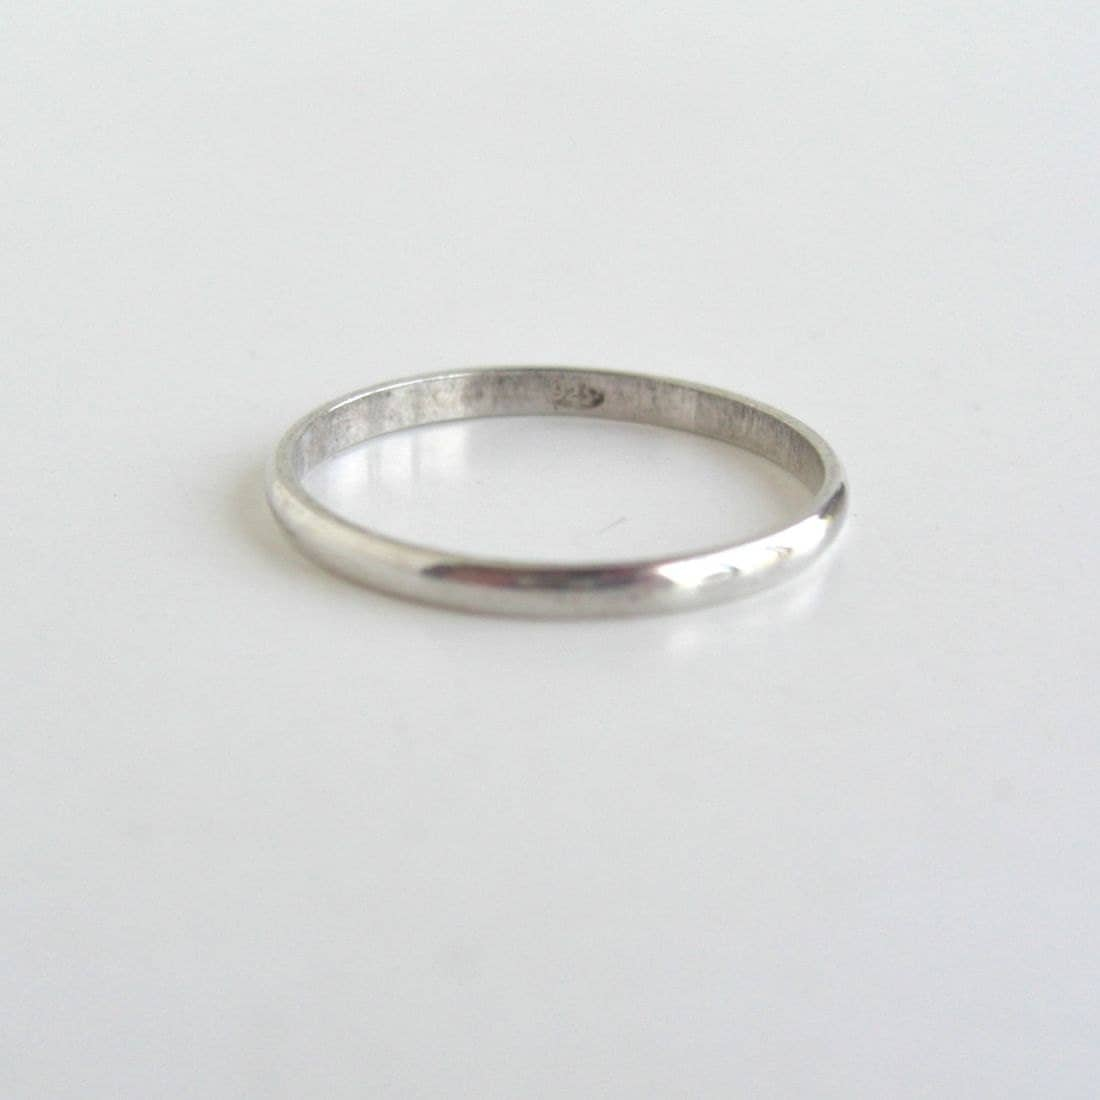 thin 925 sterling silver ring band size 10 25 by lucra